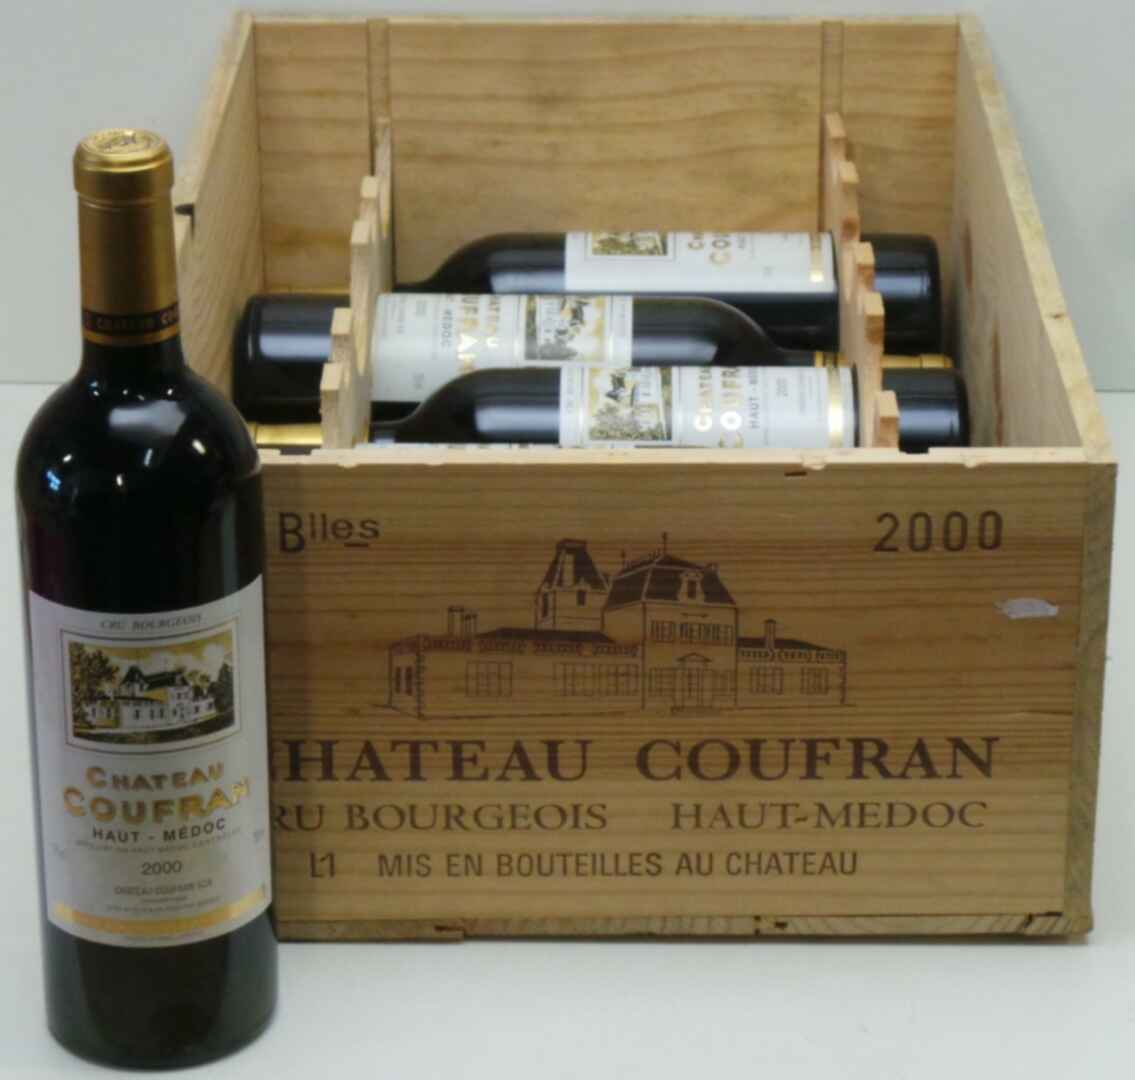 Chateau Coufran 2000